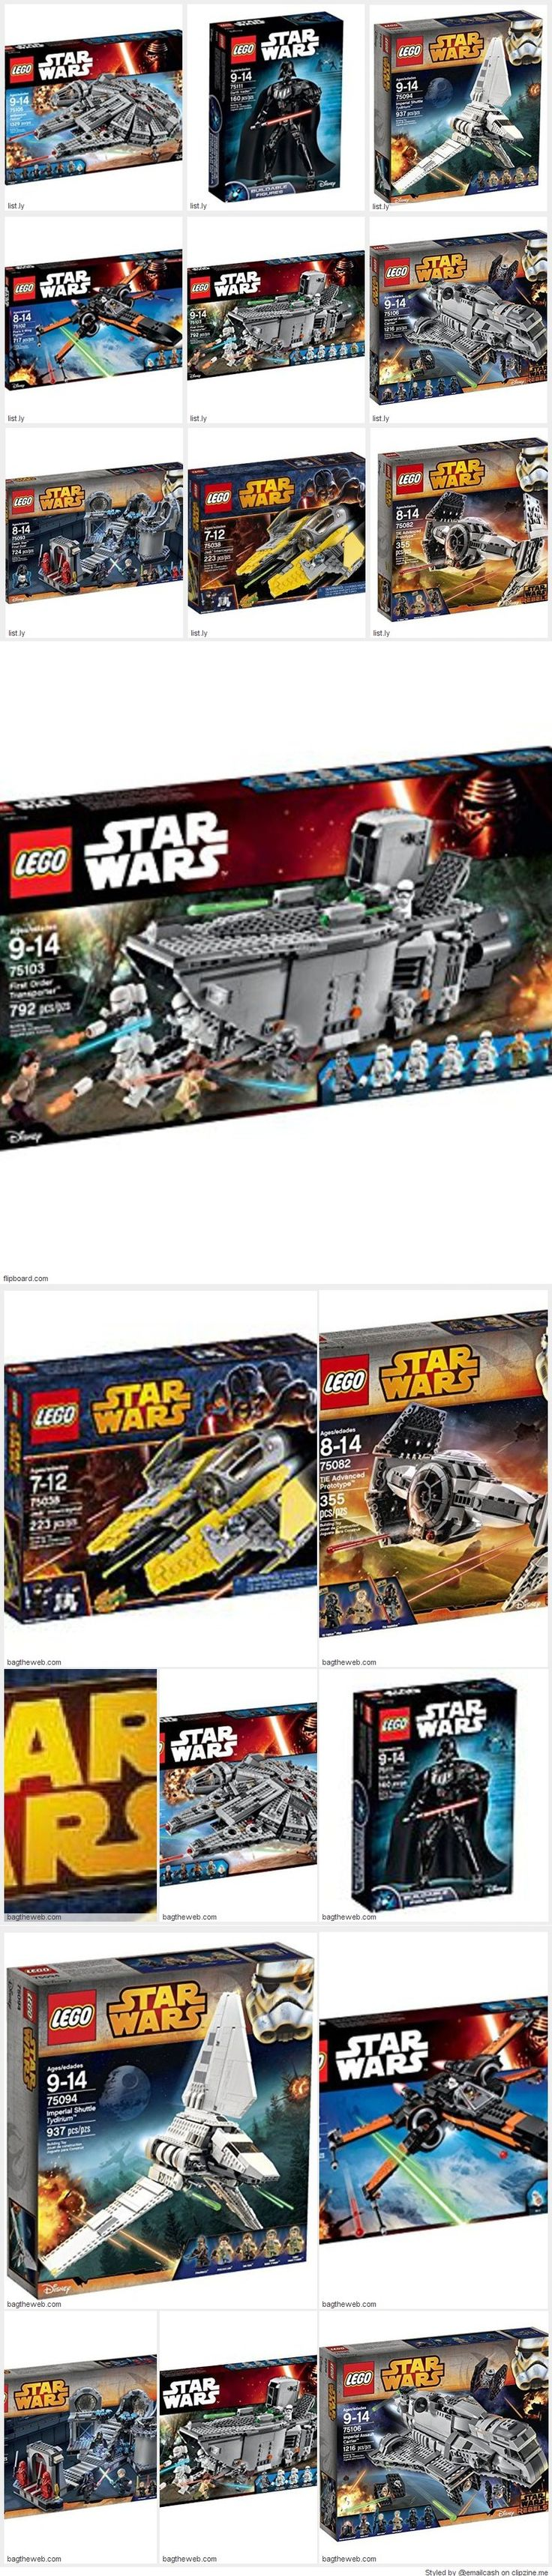 Are you looking for Cheap Lego Star Wars Building Kits? Jedi Interceptor…